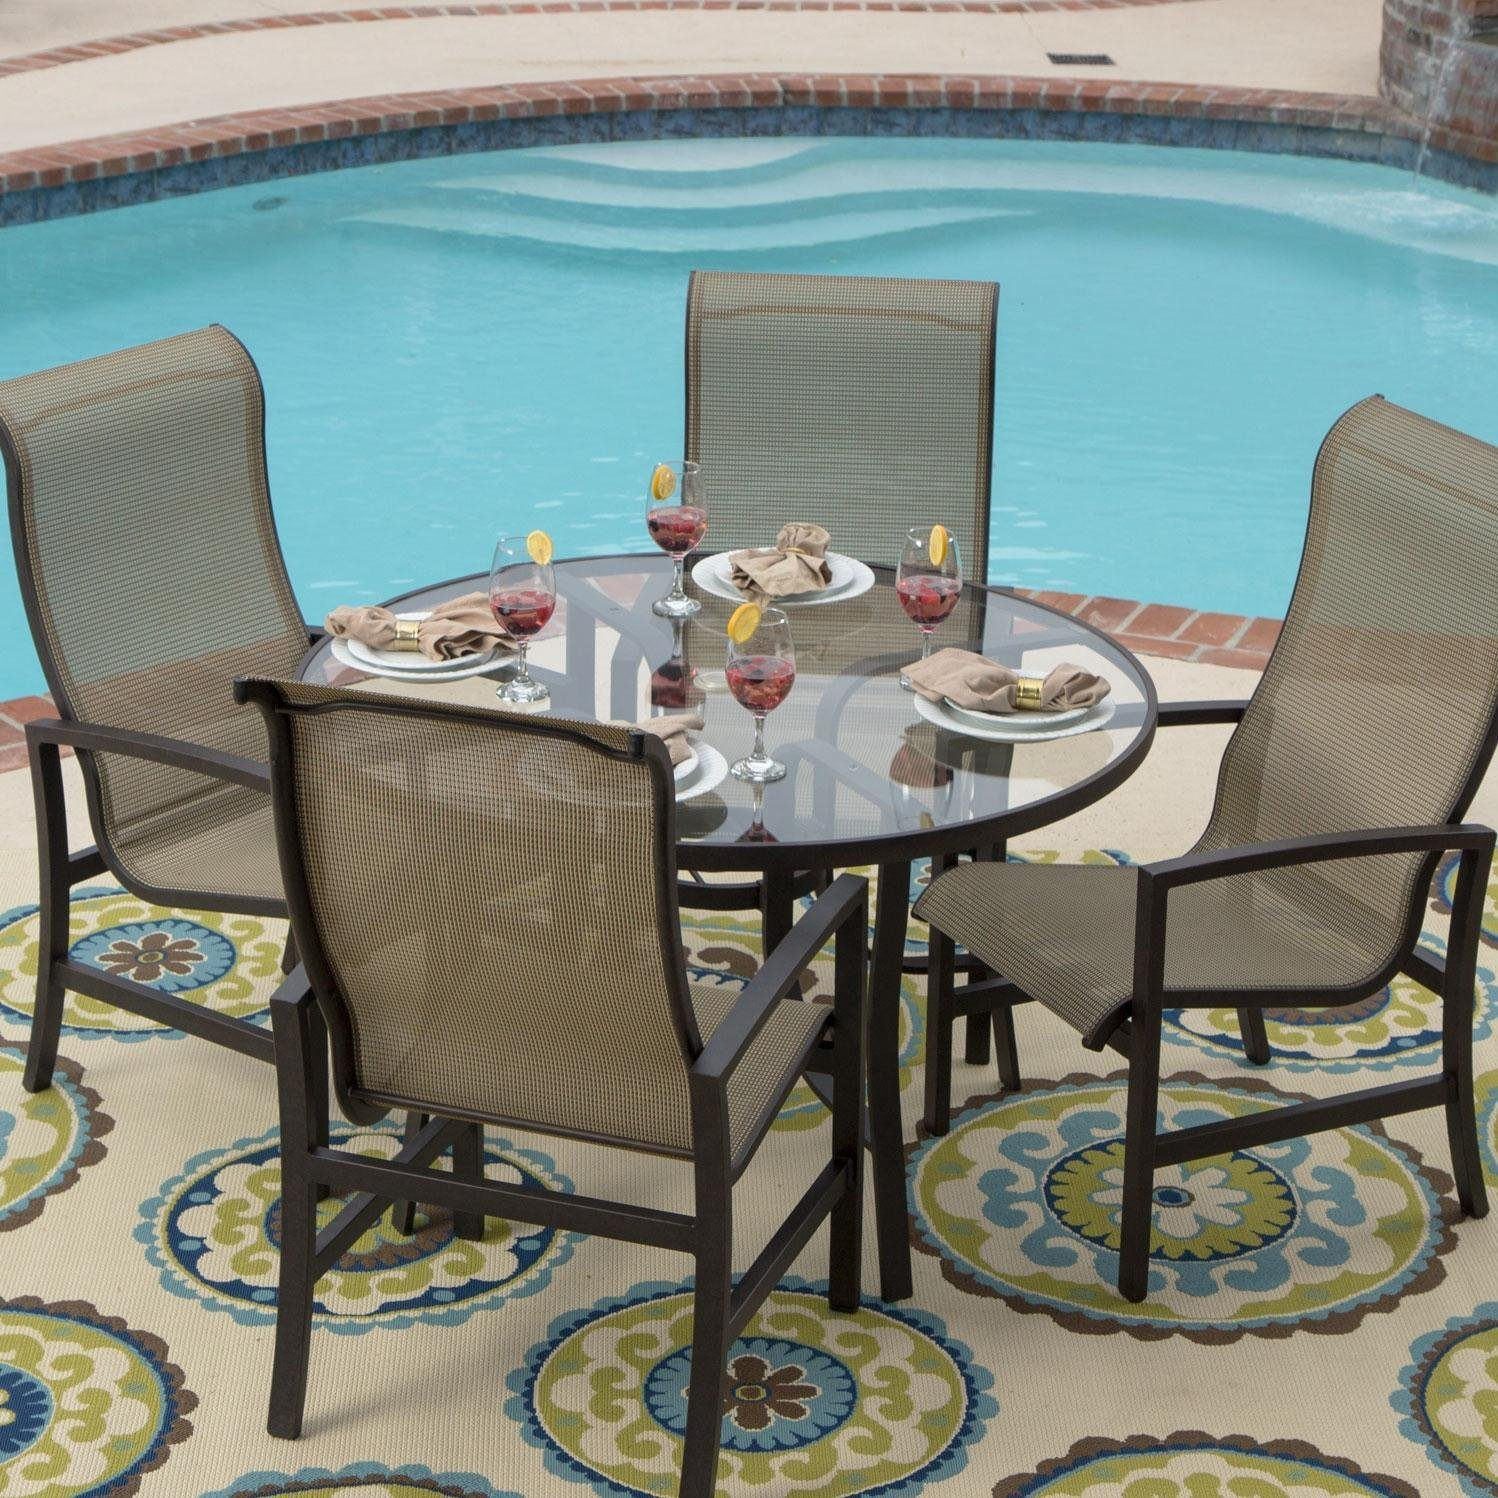 Amazon.com : Acadia 4-Person Sling Patio Dining Set With Glass Table ...